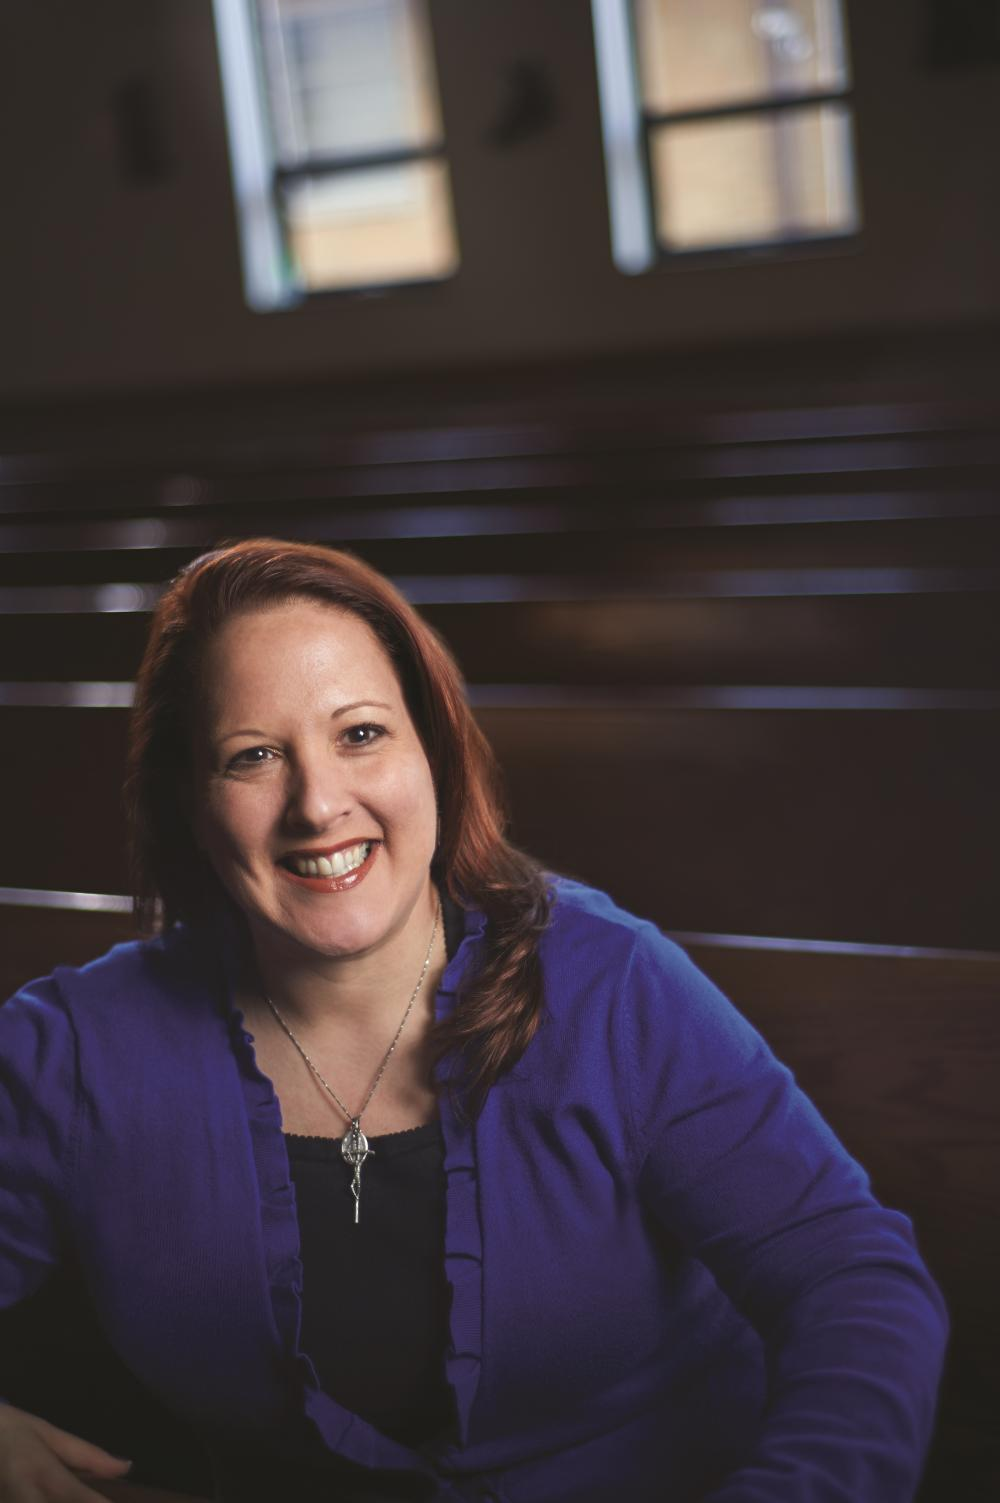 Profile of an Evangelist - Jen guides others to discipleship